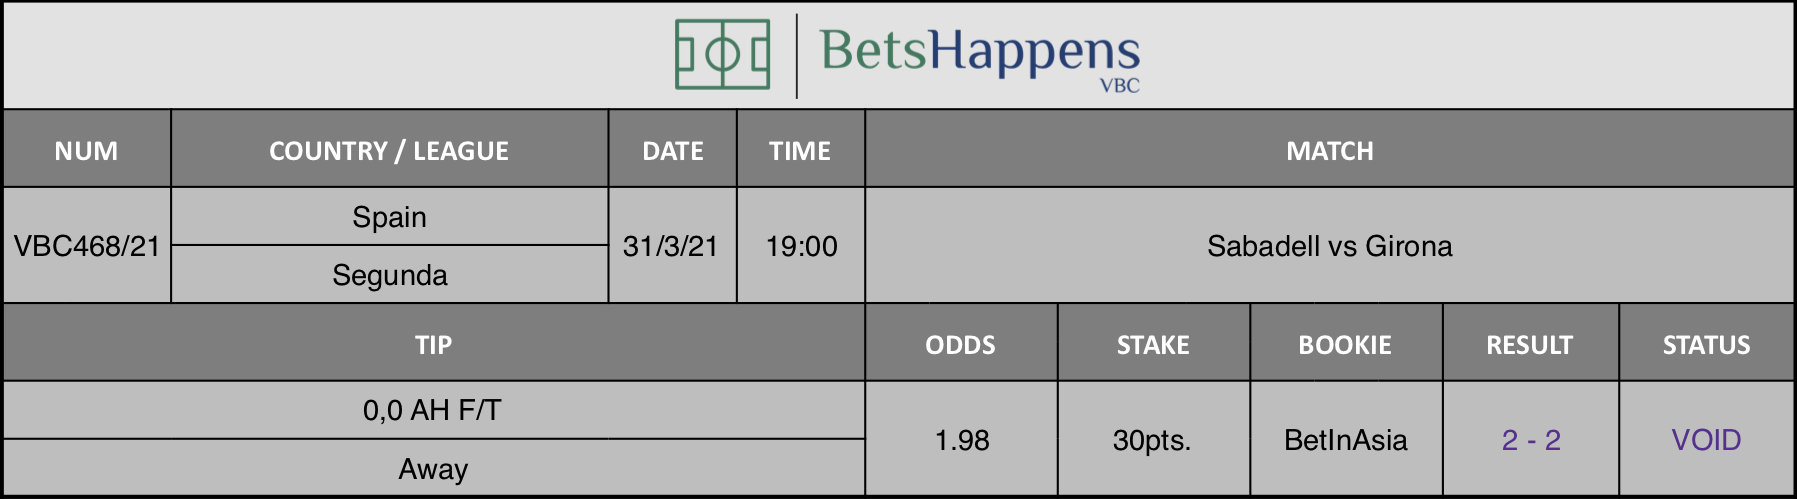 Results of our tip for the Sabadell vs Girona match where 0,0 AH F/T  Away is recommended.